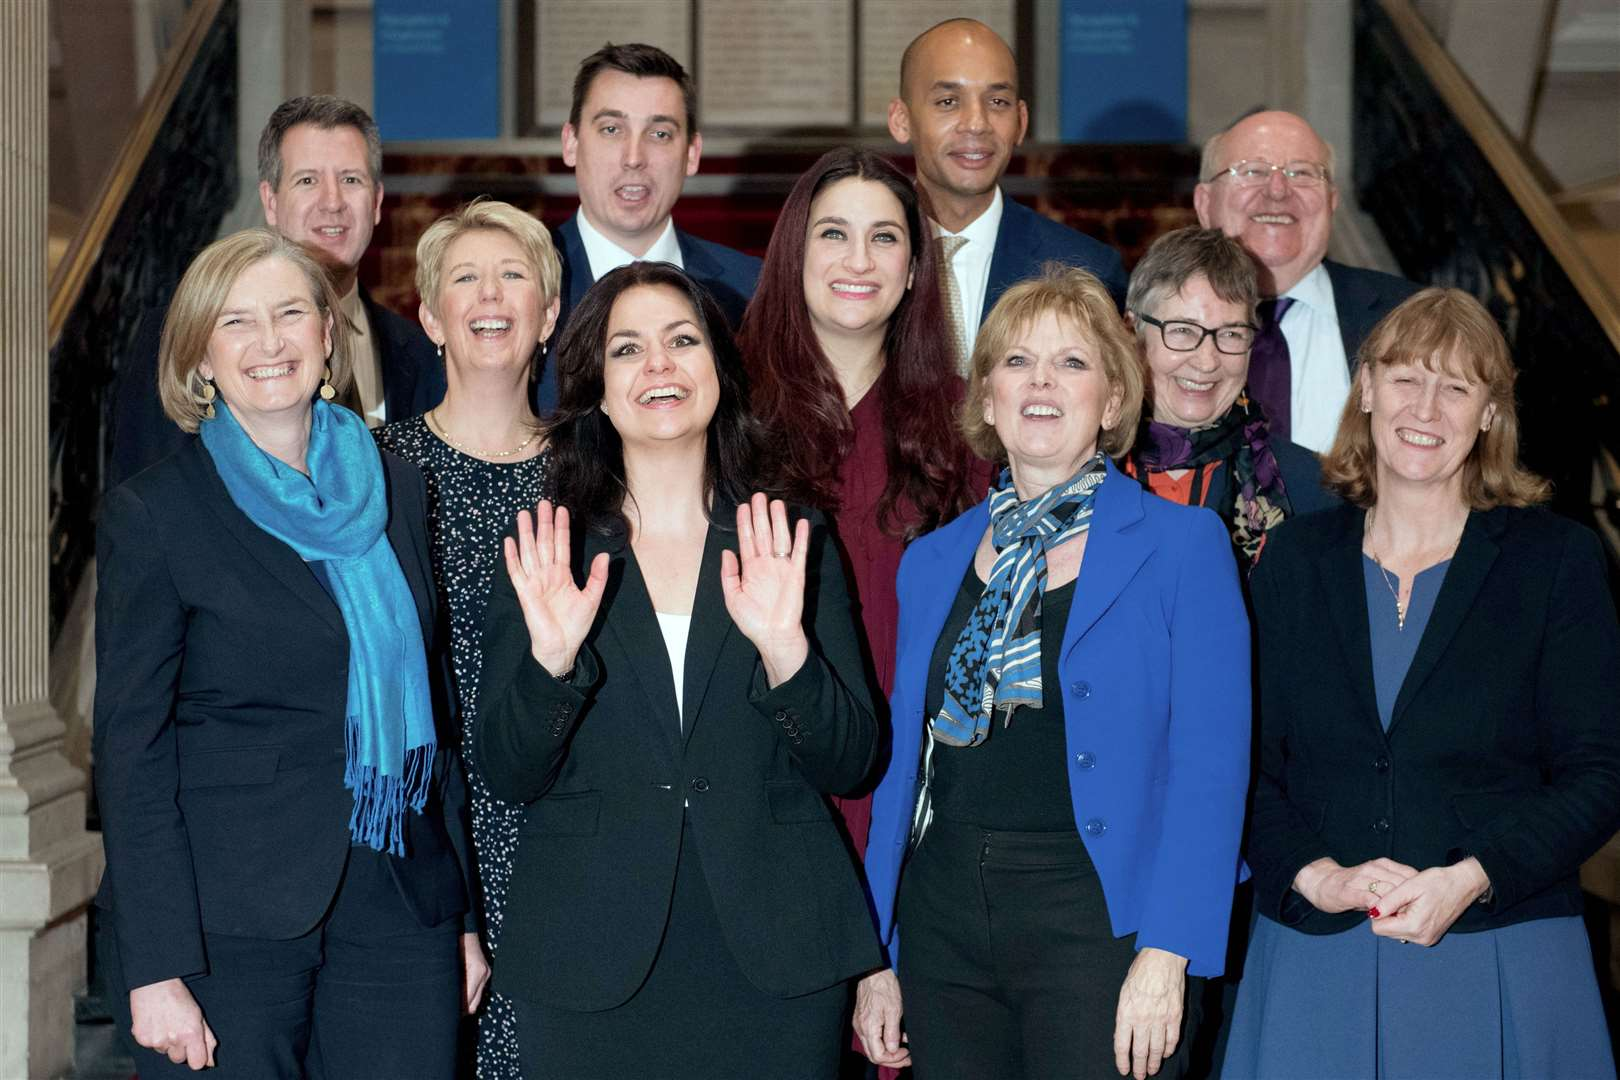 The independent group who went on to form Change UK. Back, from left, Chris Leslie, Gavin Shuker, Chuka Umunna and Mike Gapes. Middle row, from left, Angela Smith, Luciana Berger and Ann Coffey. Front row, from left, Sarah Wollaston, Heidi Allen, Anna Soubry and Joan Ryan.